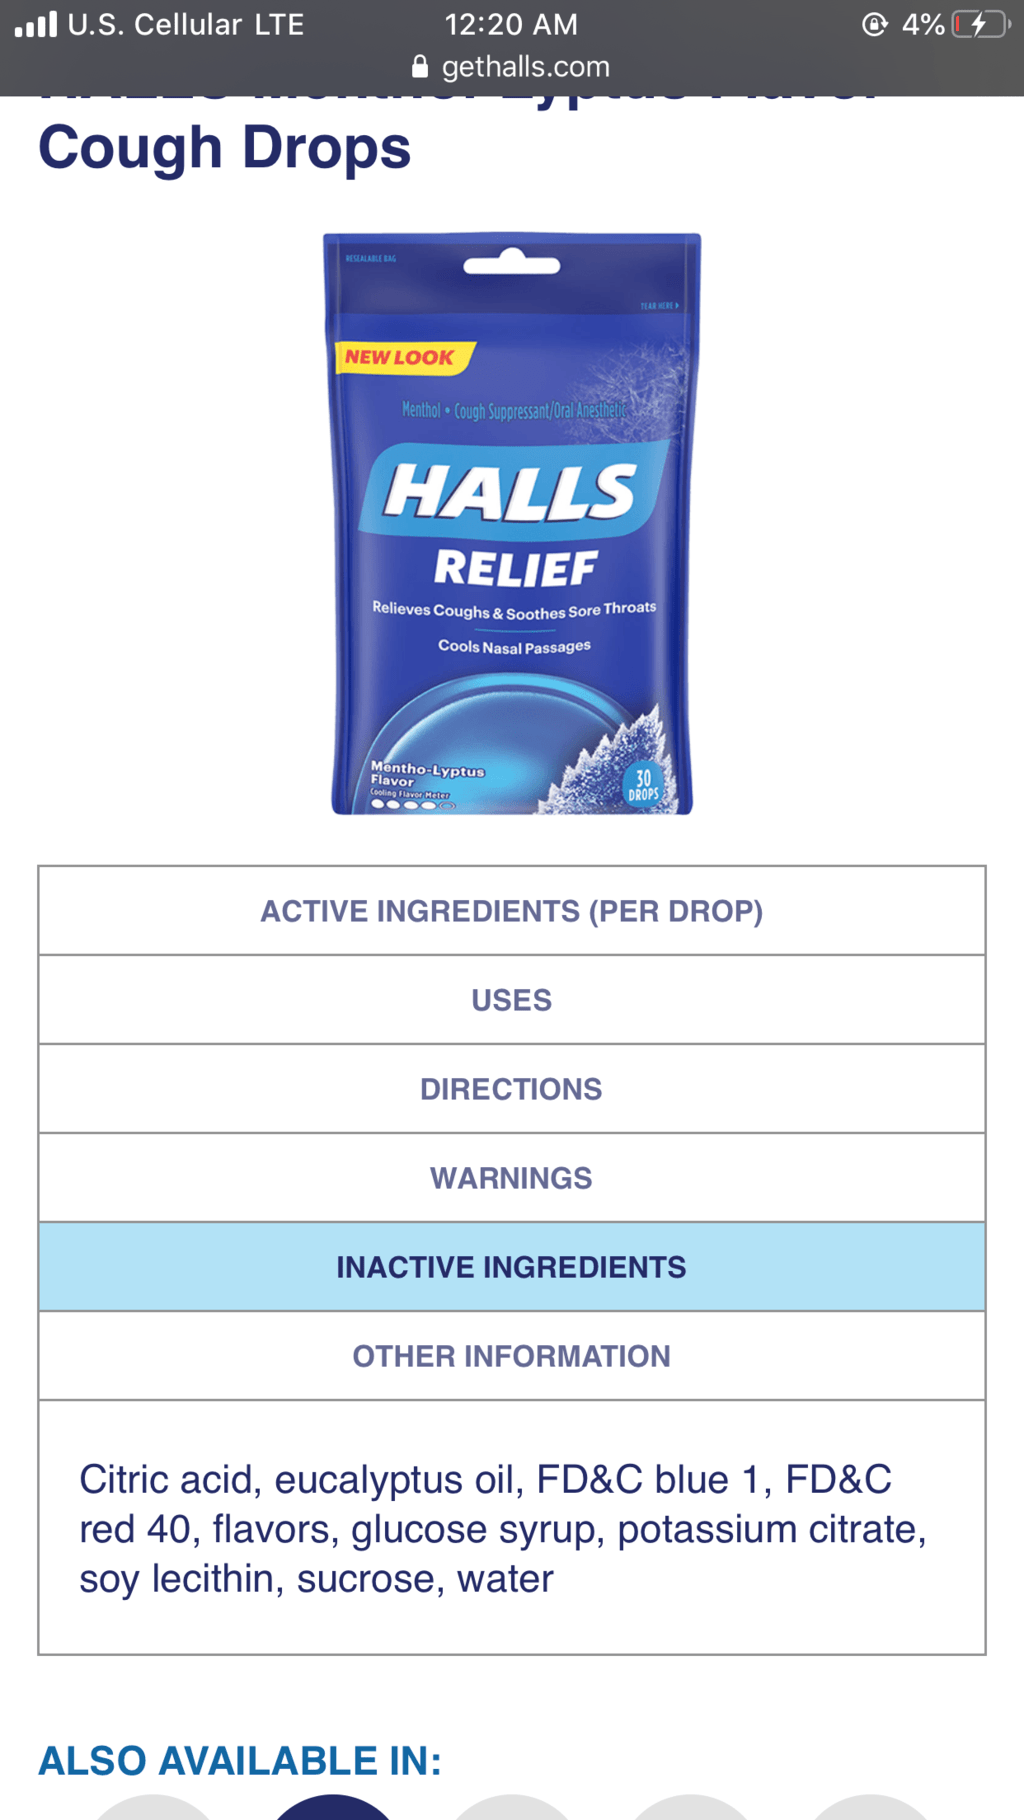 My Dog Ate A Cough Drop : cough, Pounds), MAYBE, Halls, Menthol, Cough, Drops., There, Xylitol, Listed, Ingredient., Wondering, PetCoach